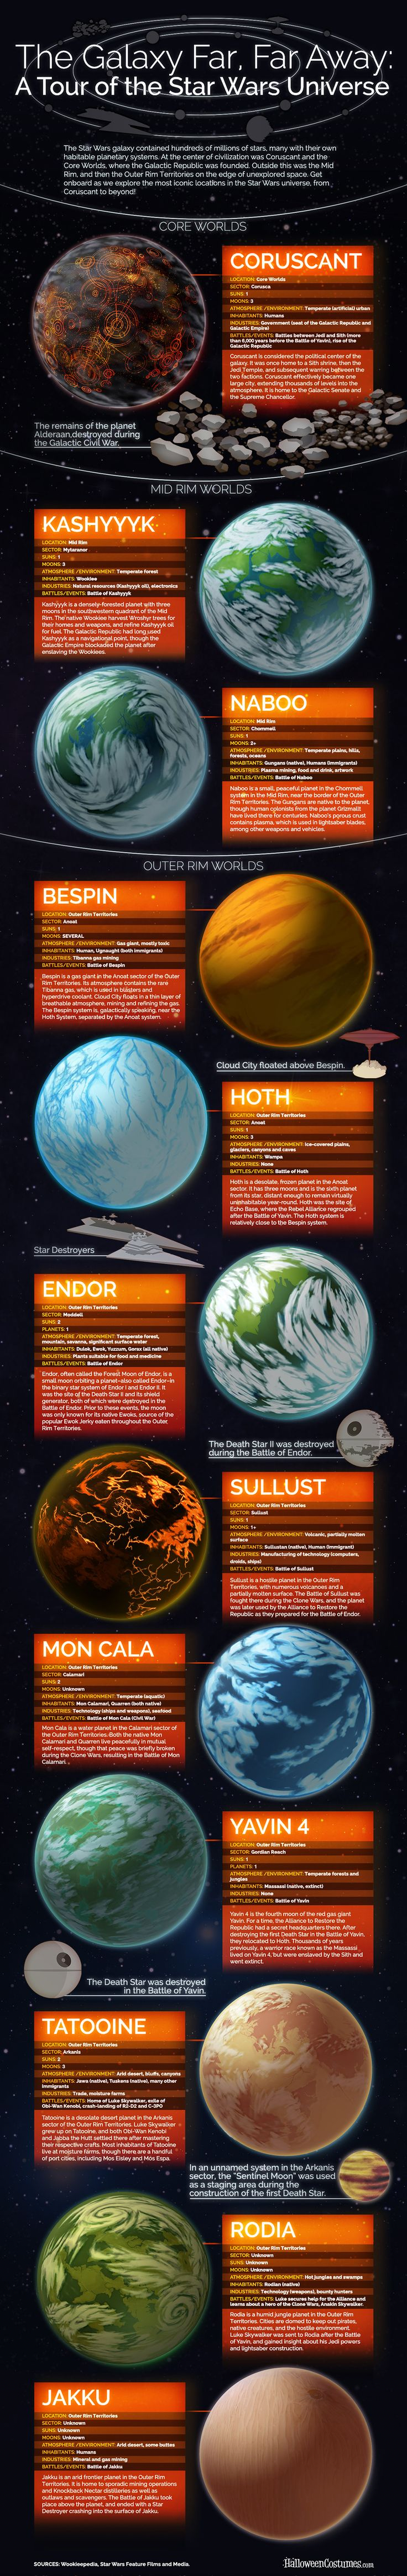 Tour Of Major Planets In The 'Star Wars' Universe